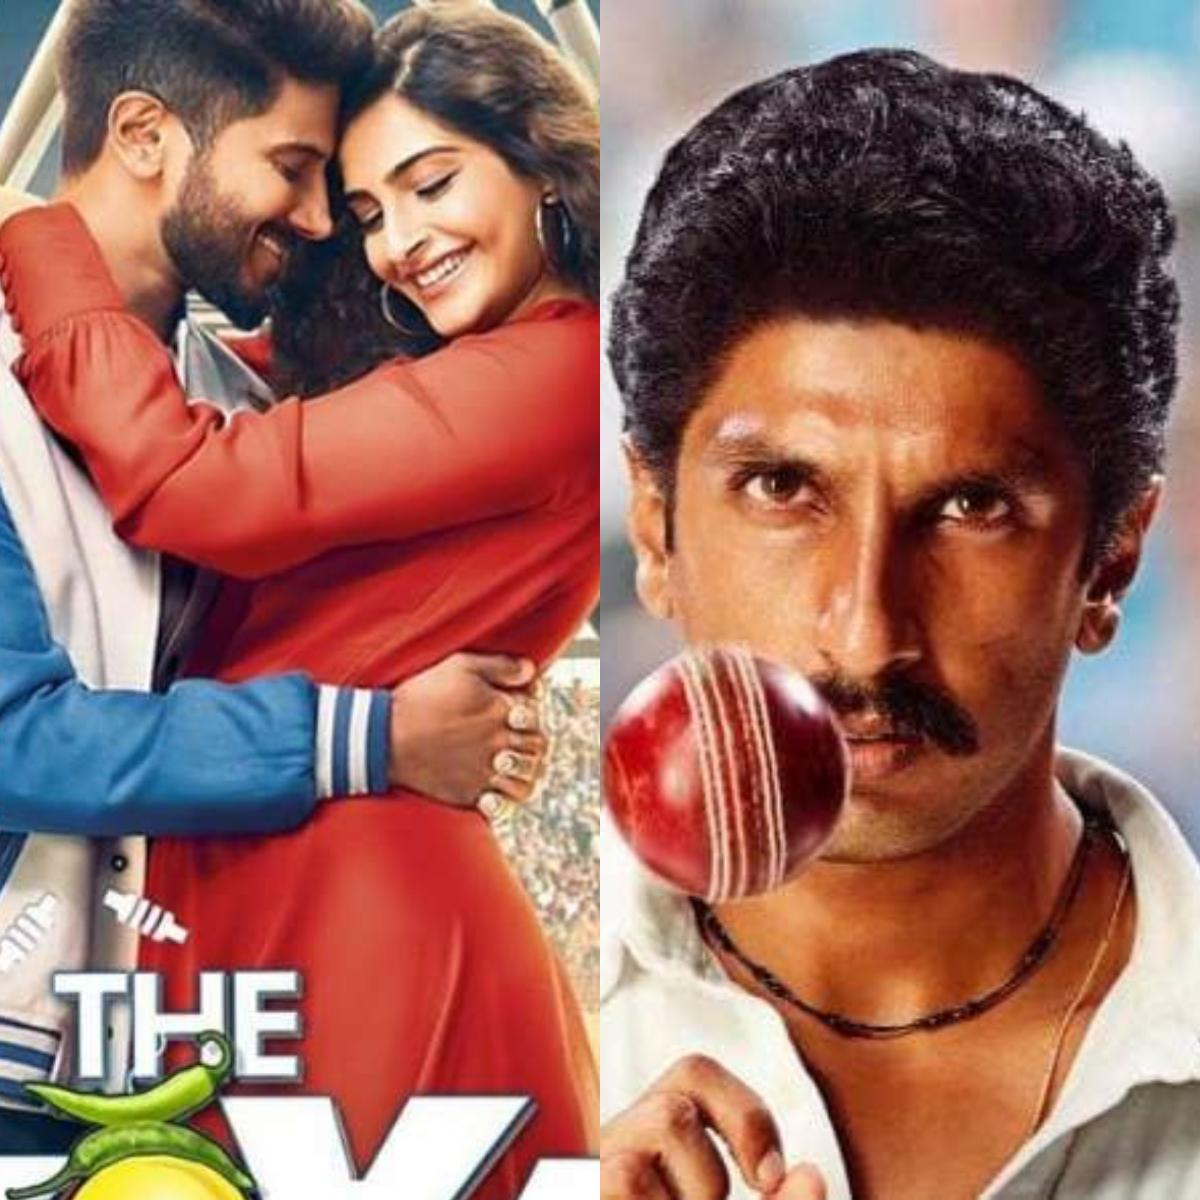 National Sports Day 2019: From The Zoya Factor to '83, THESE upcoming Bollywood films are based on sports